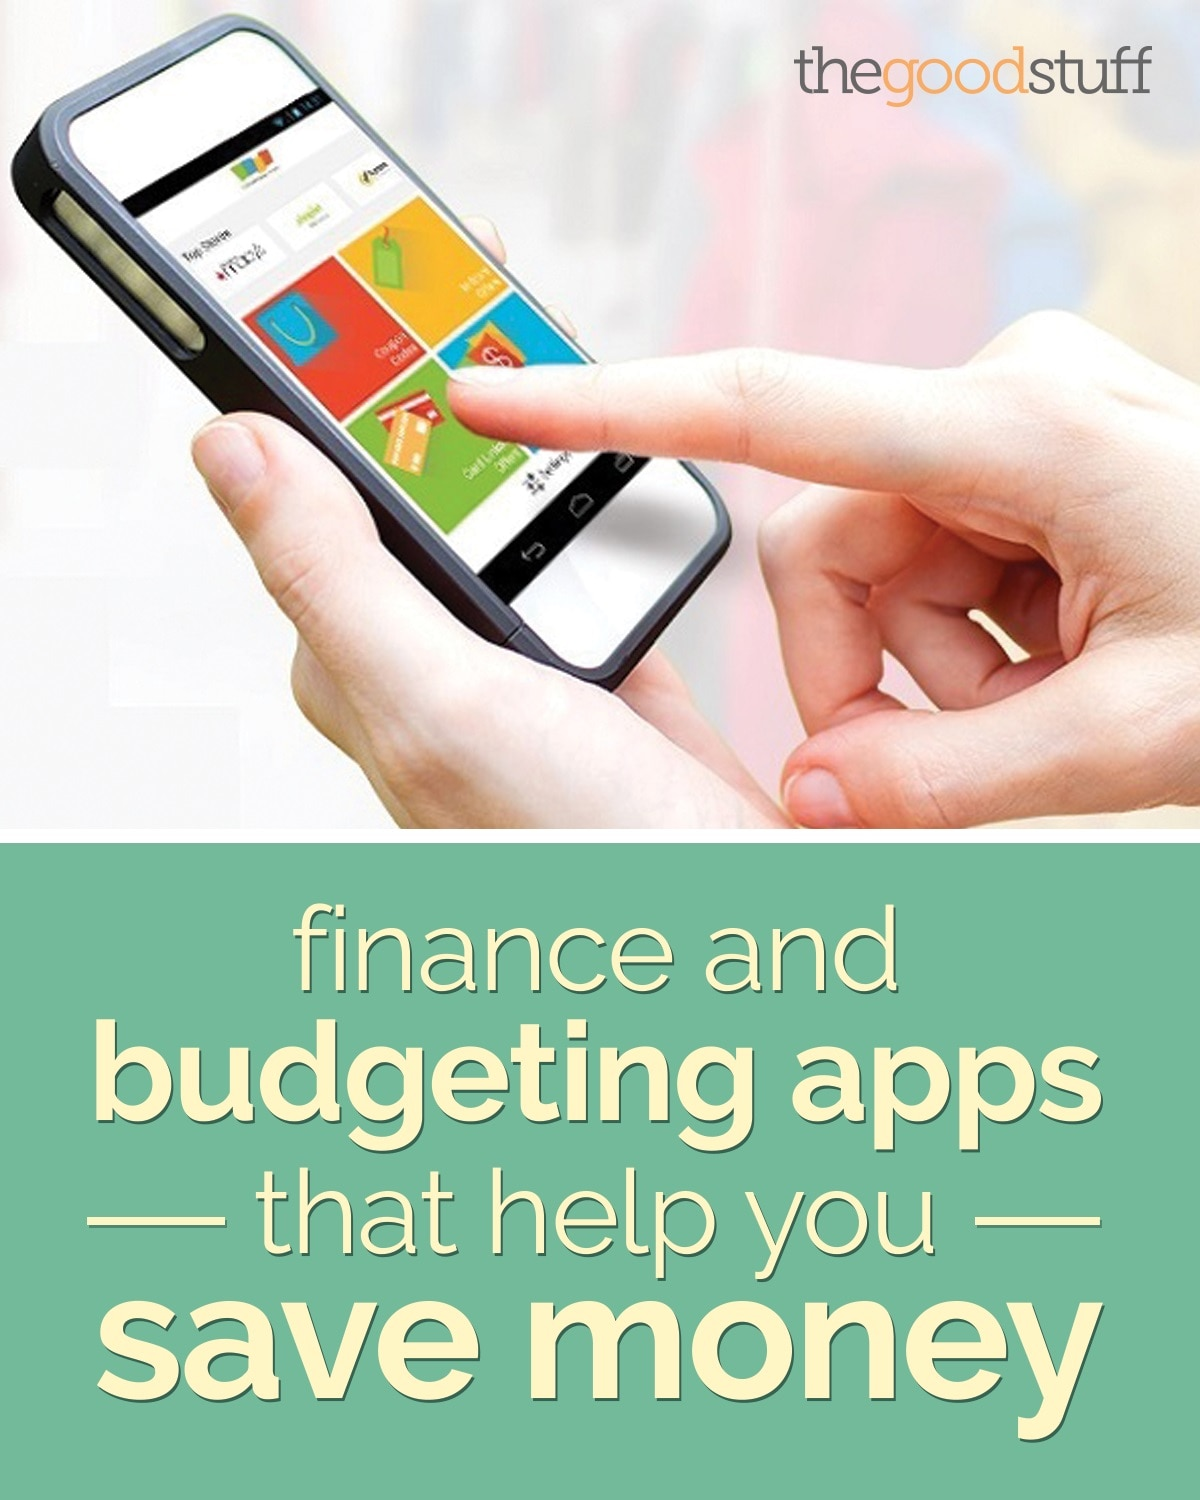 life-finance-and-budgeting-apps